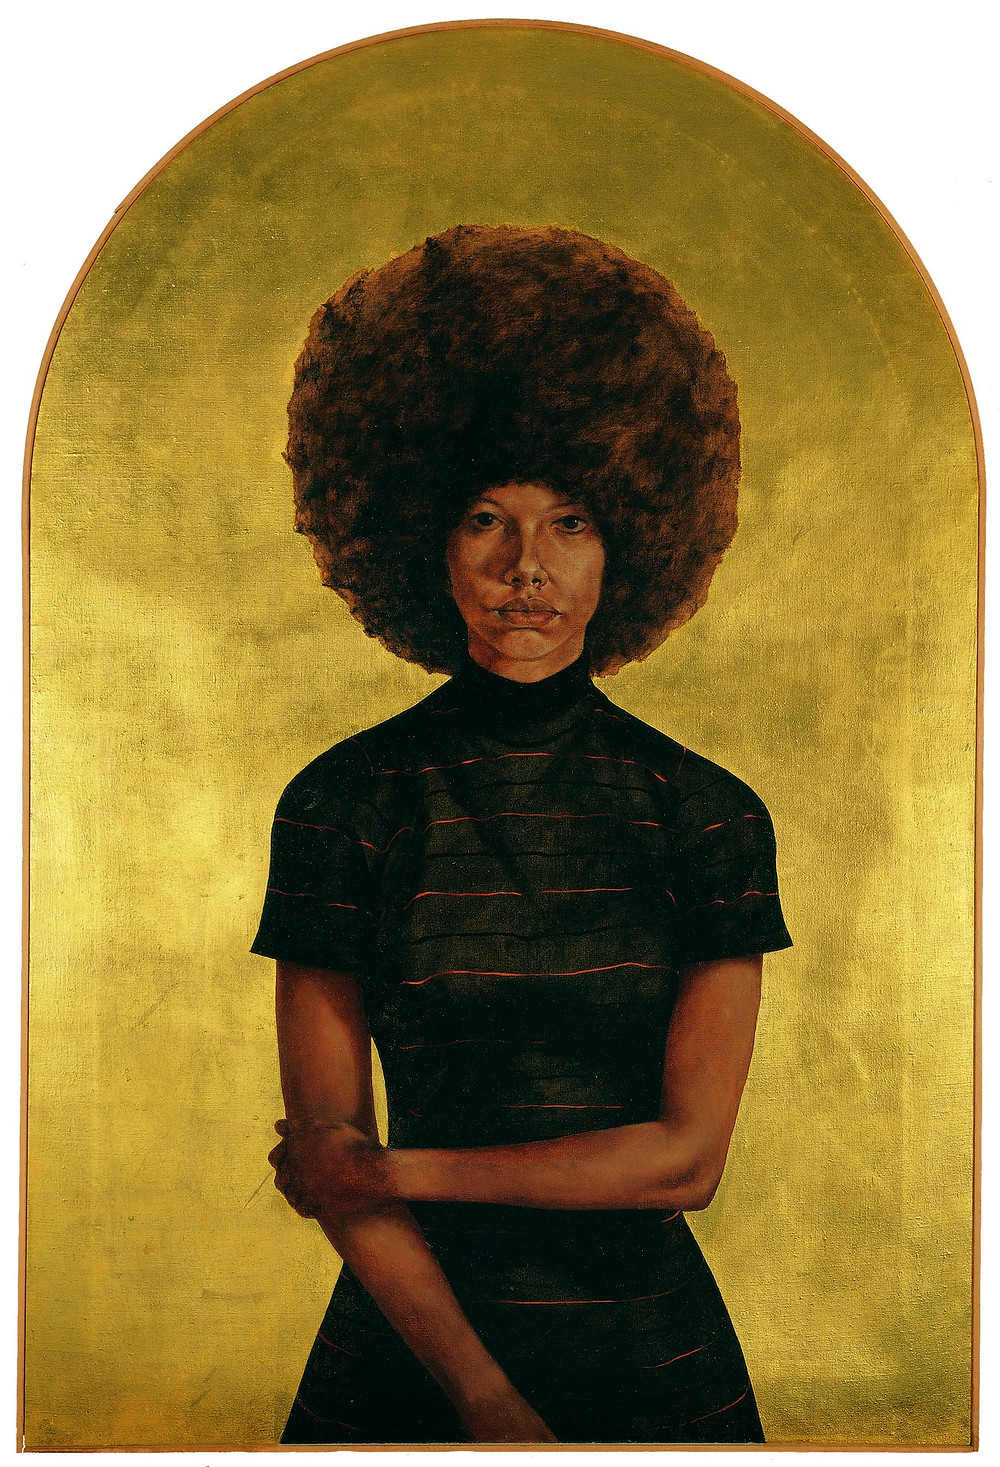 Black artist Barkey L. Hendricks' painting of a black woman